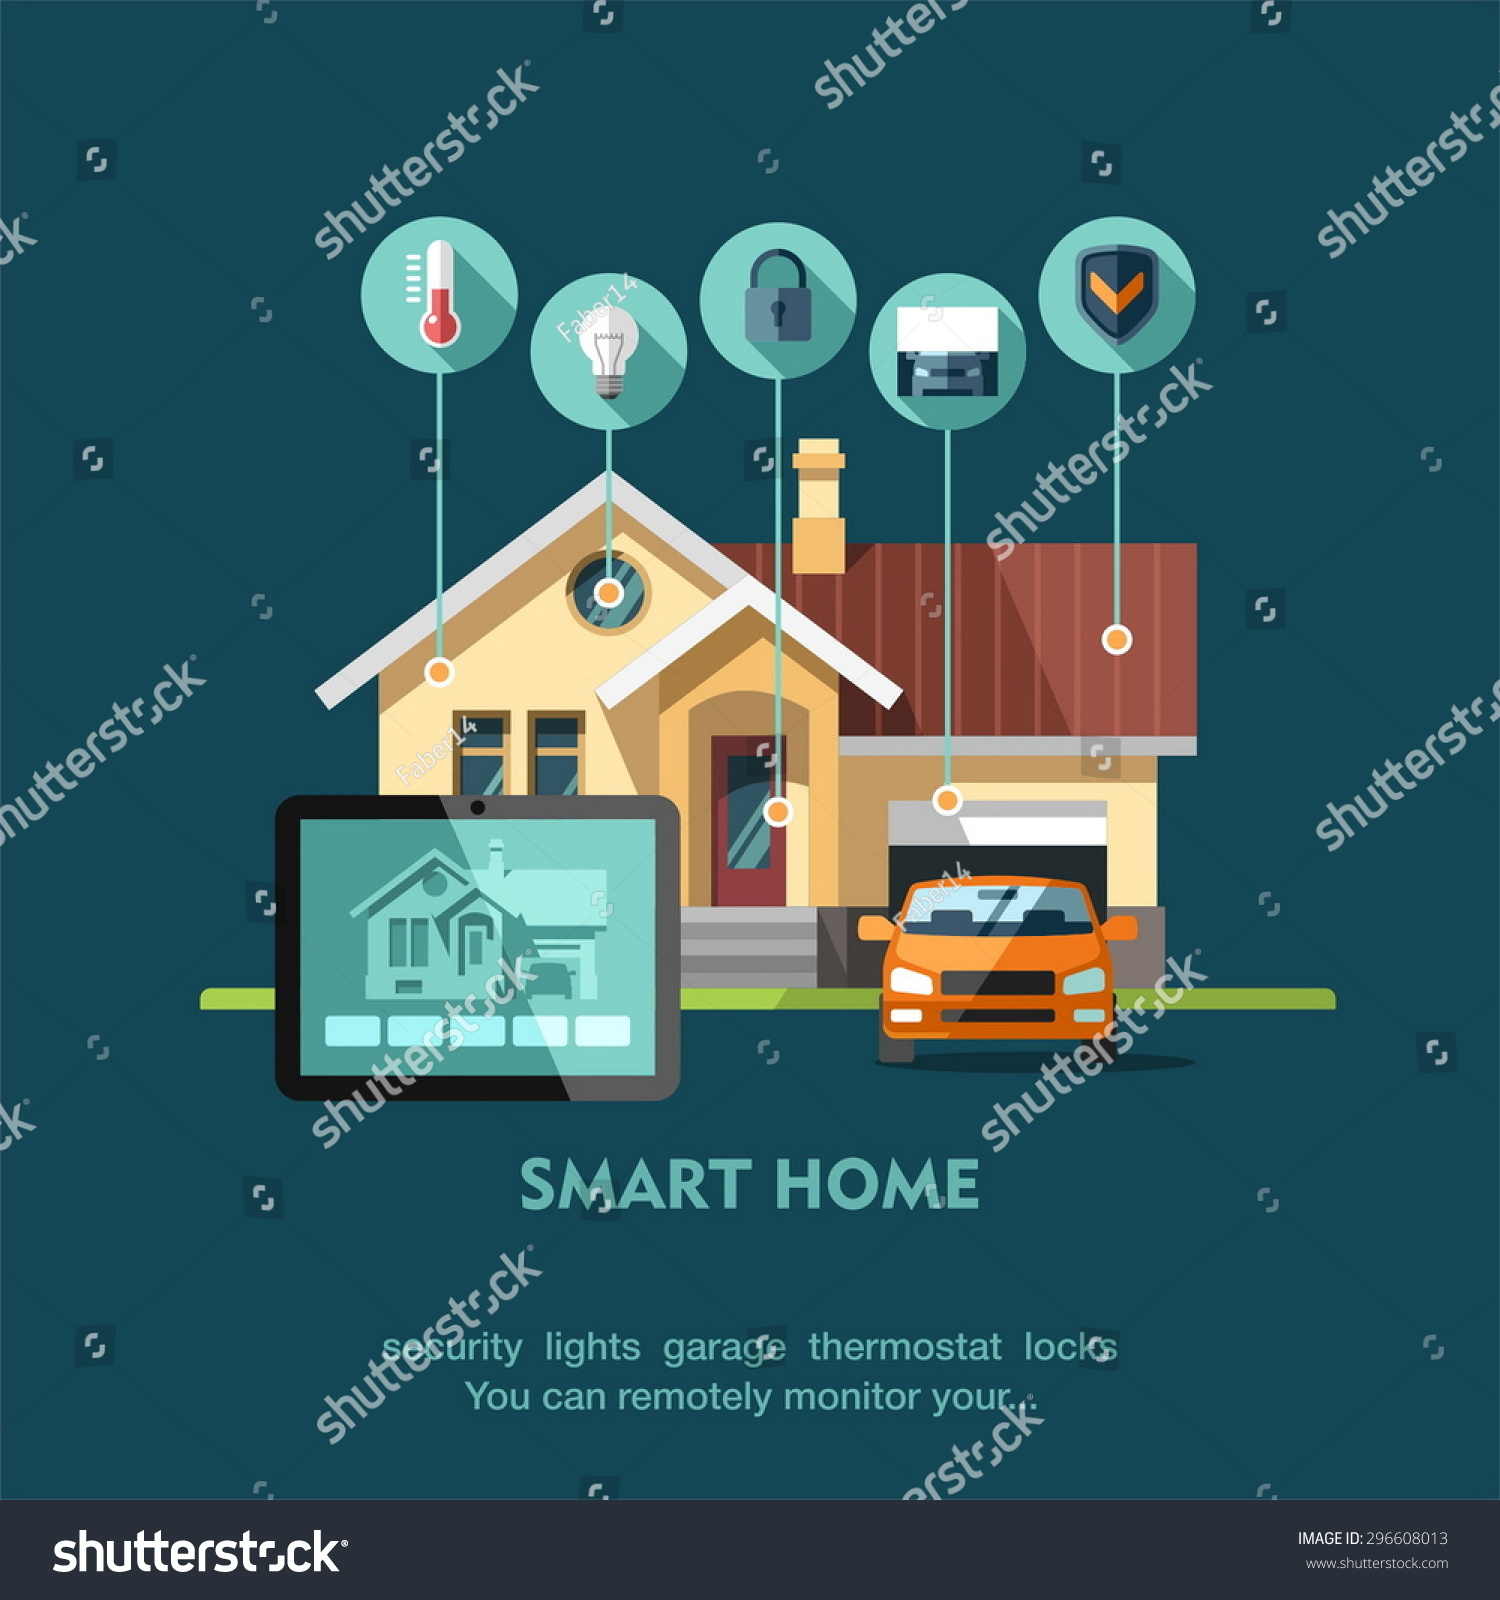 smart home flat design style vector illustration concept of smart house technology system with centralized - How To Design A Smart Home